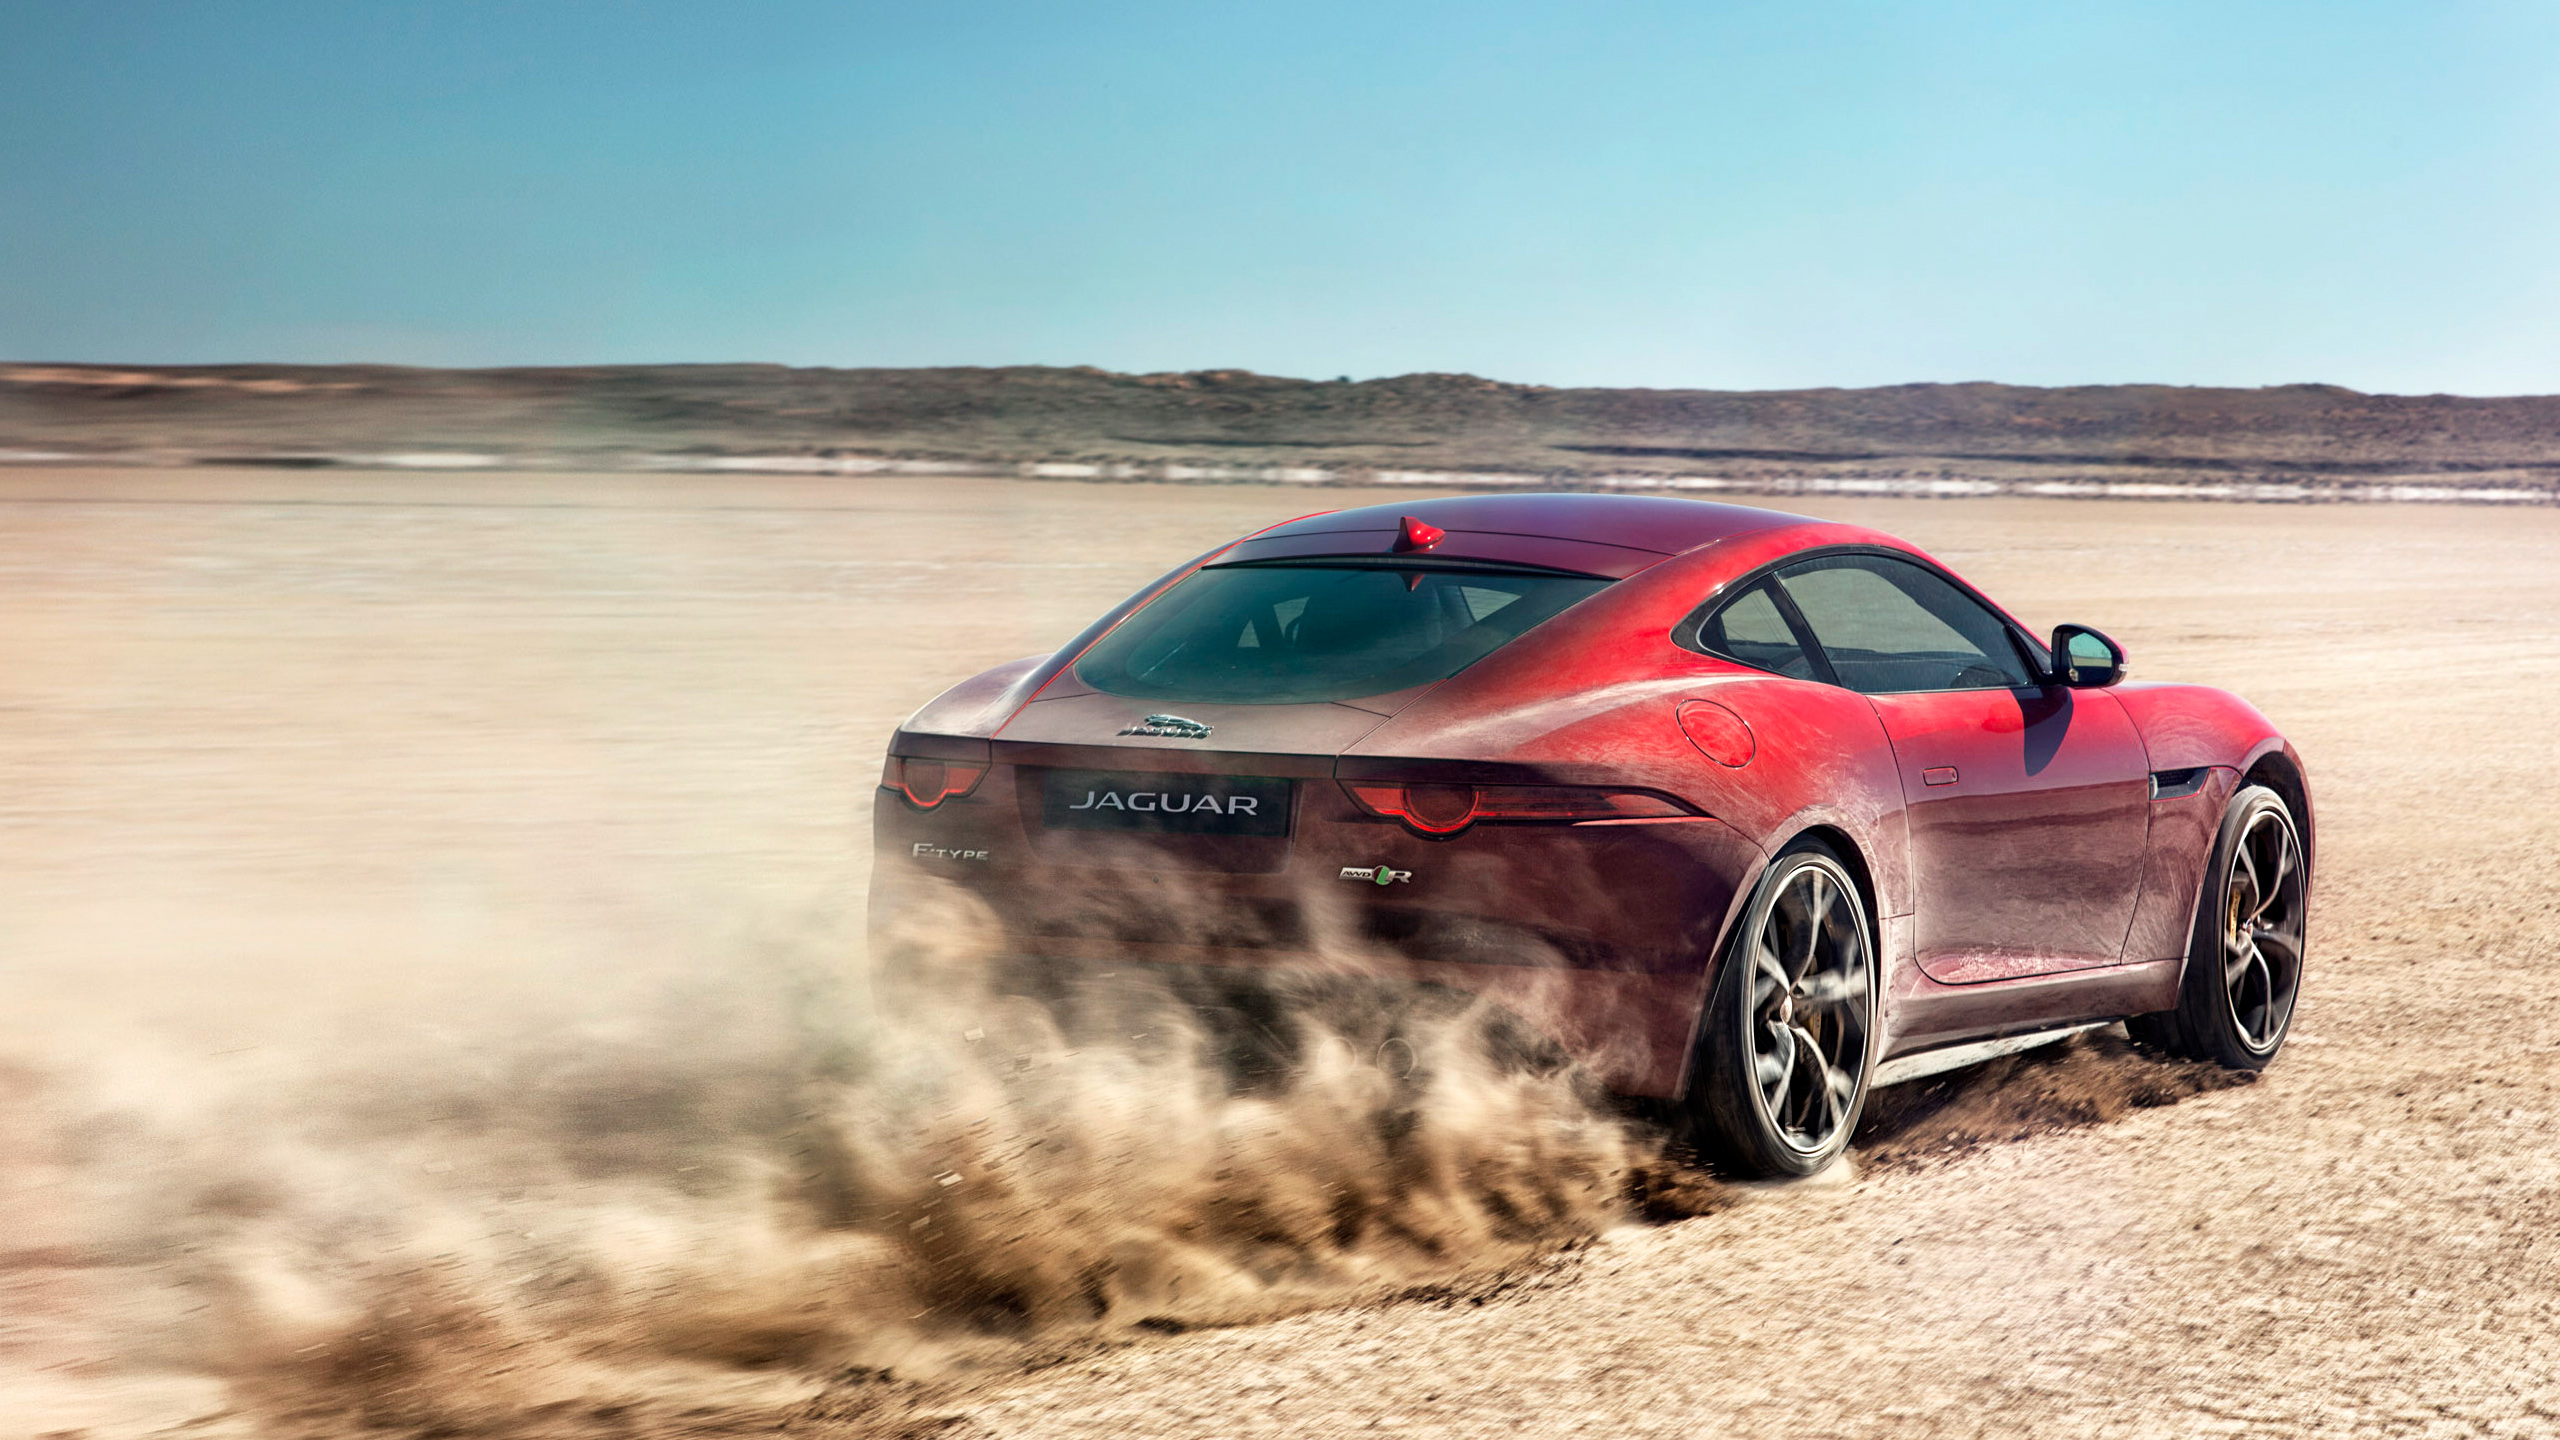 2016 jaguar f type r coupe all wheel drive wallpaper | hd car